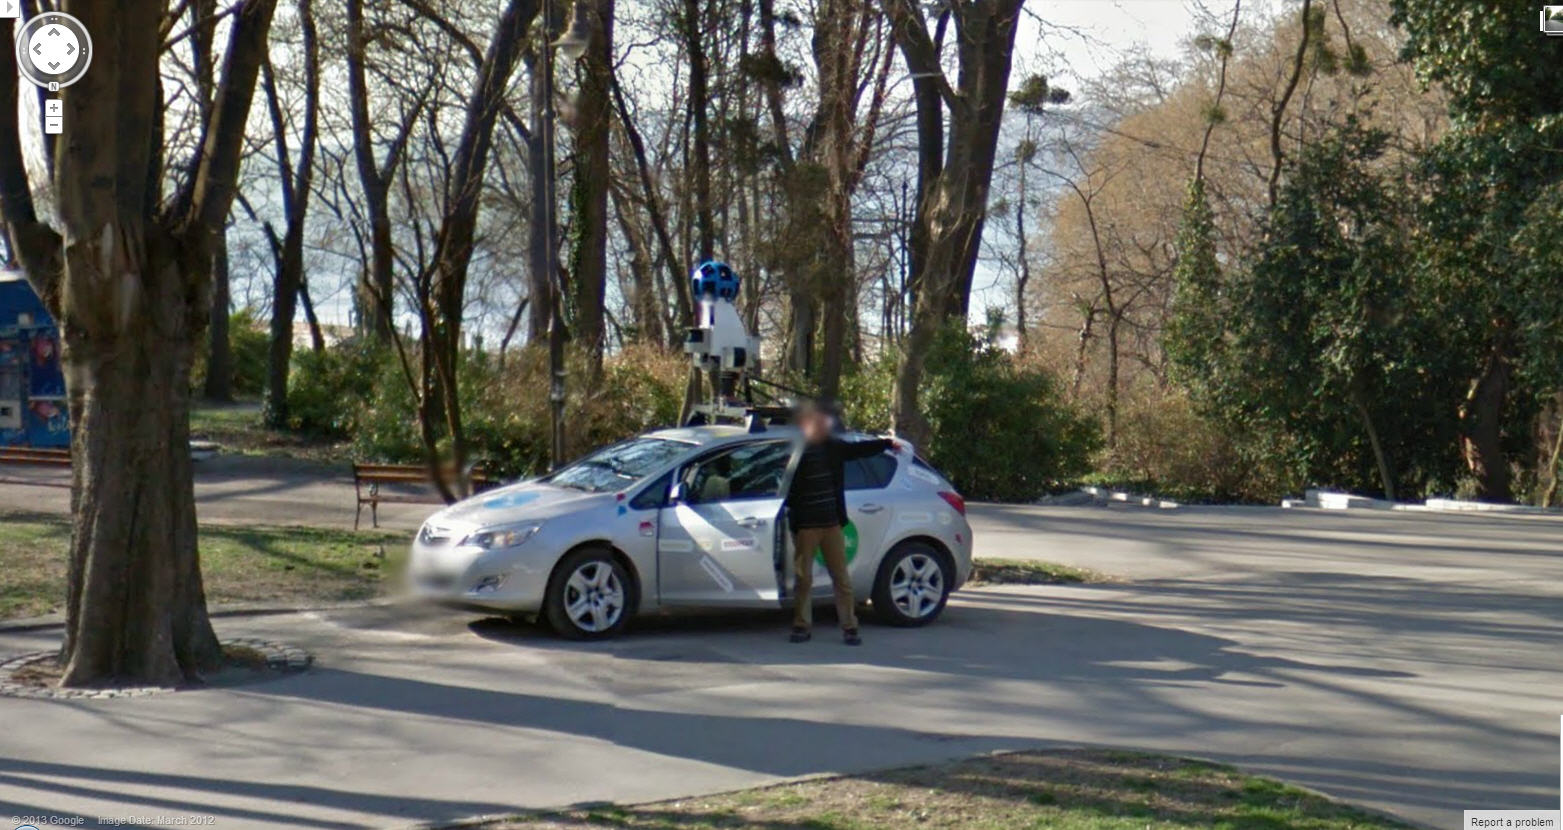 Google Street View driver photobombing another street view car.